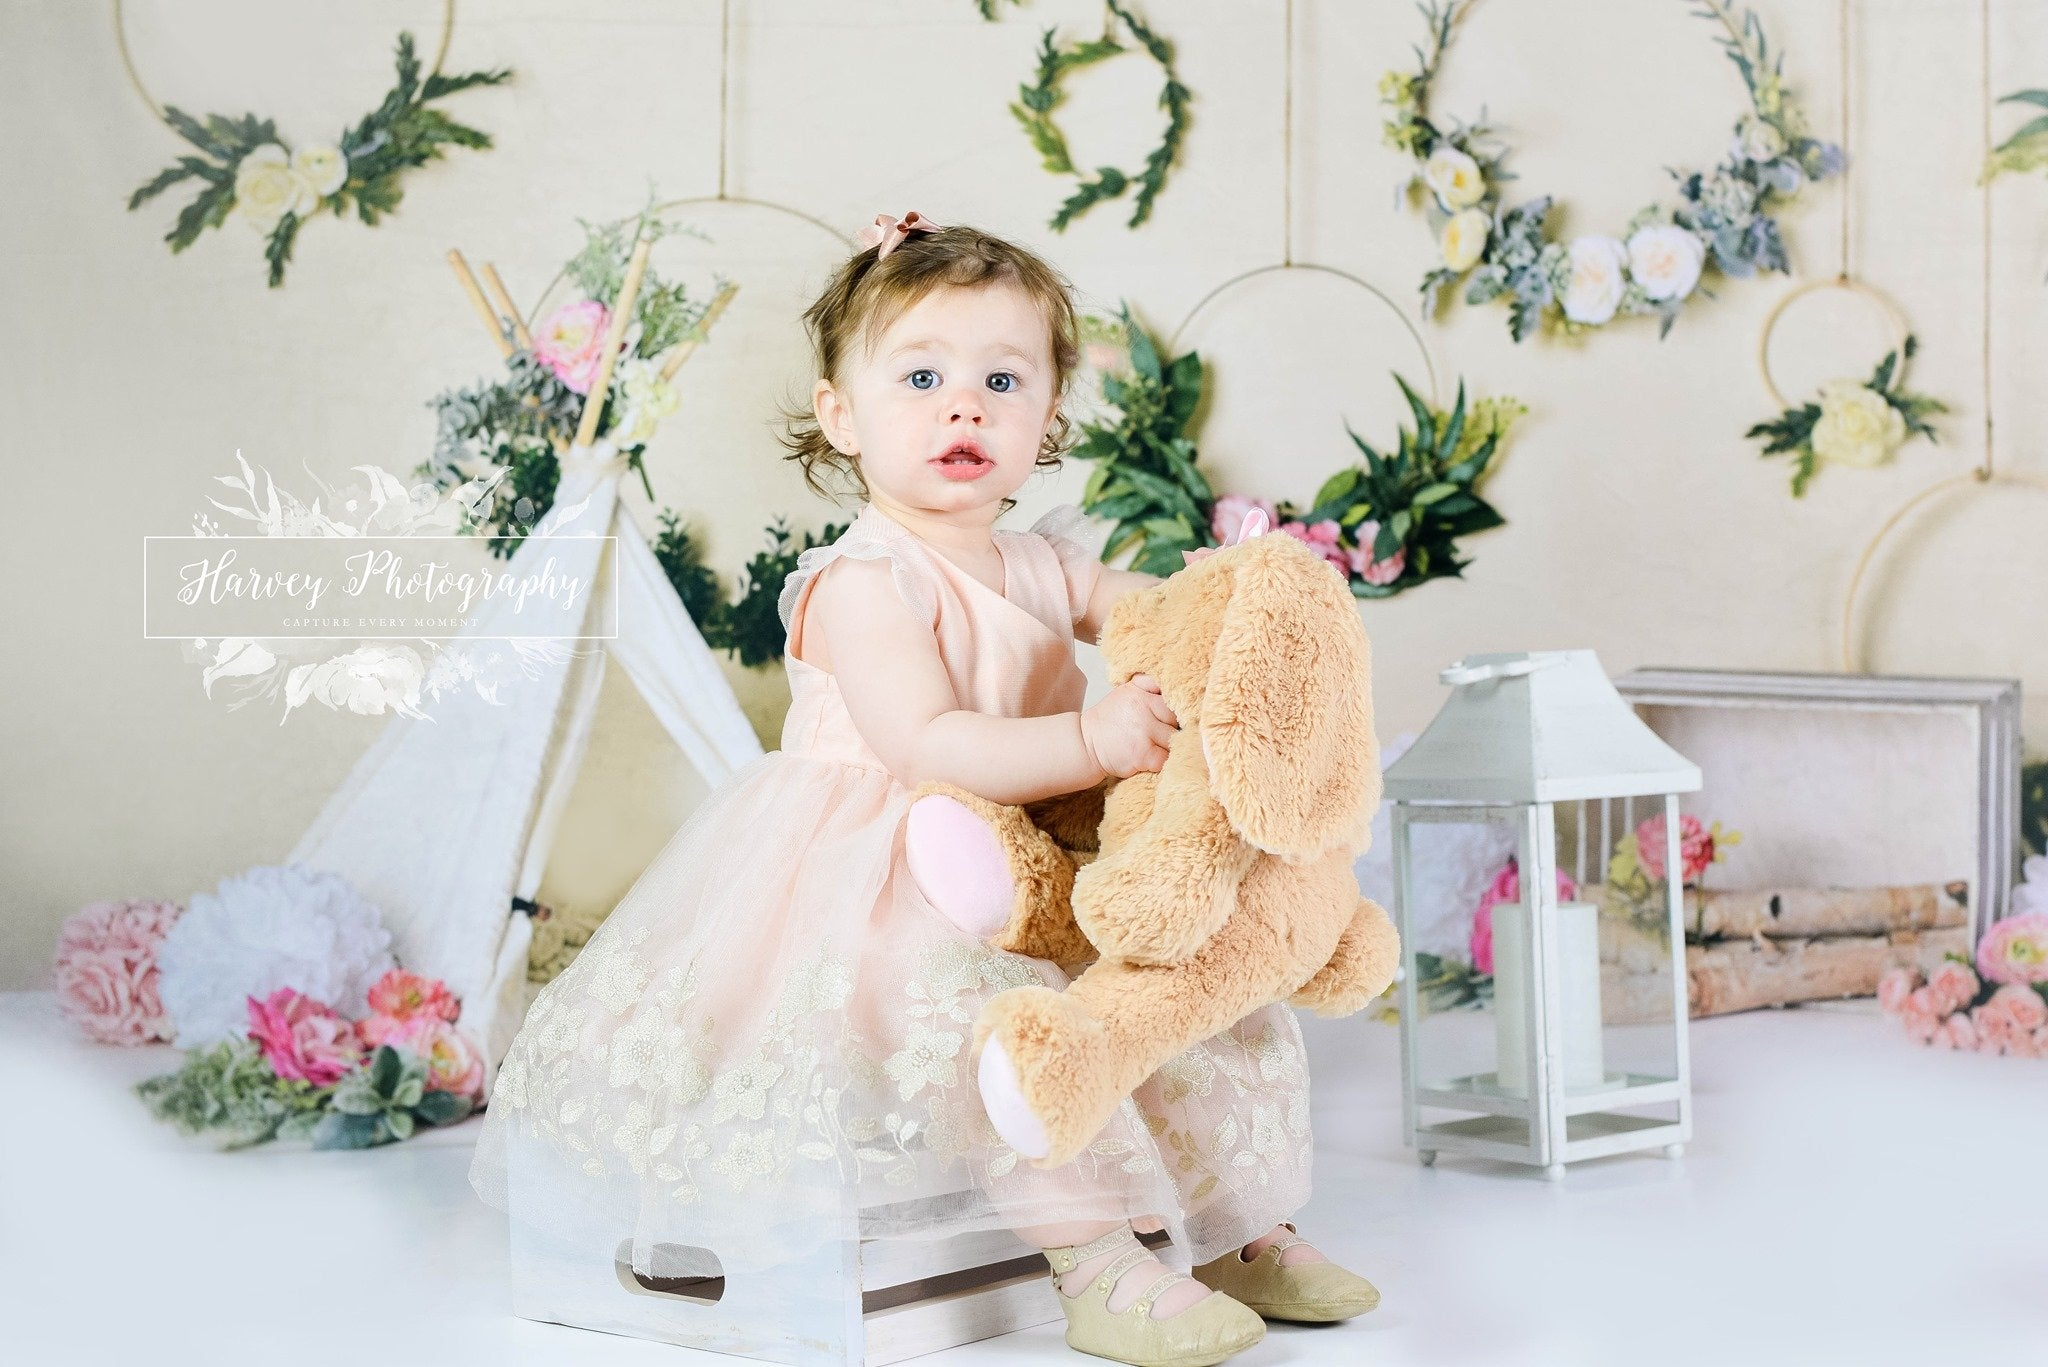 Load image into Gallery viewer, Kate Spring Flowers Camping Children Backdrop for Photography Designed by Mandy Ringe Photography